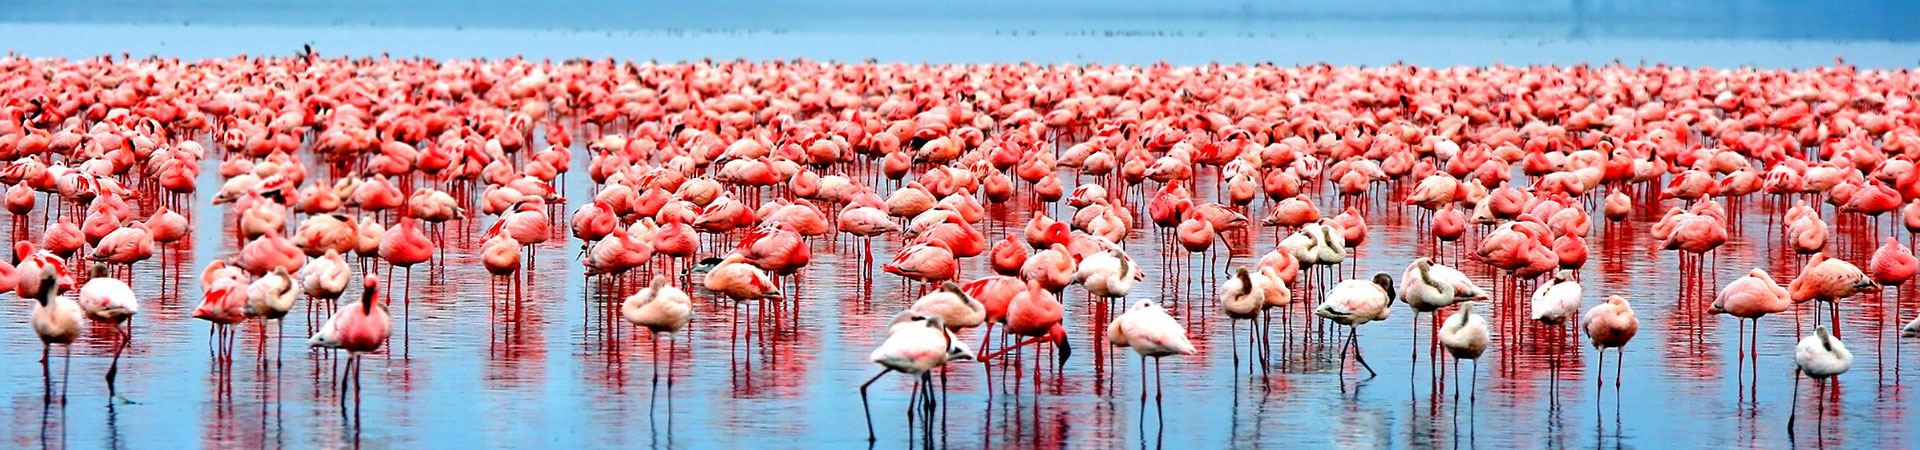 Flamingo-in-lake-manyara